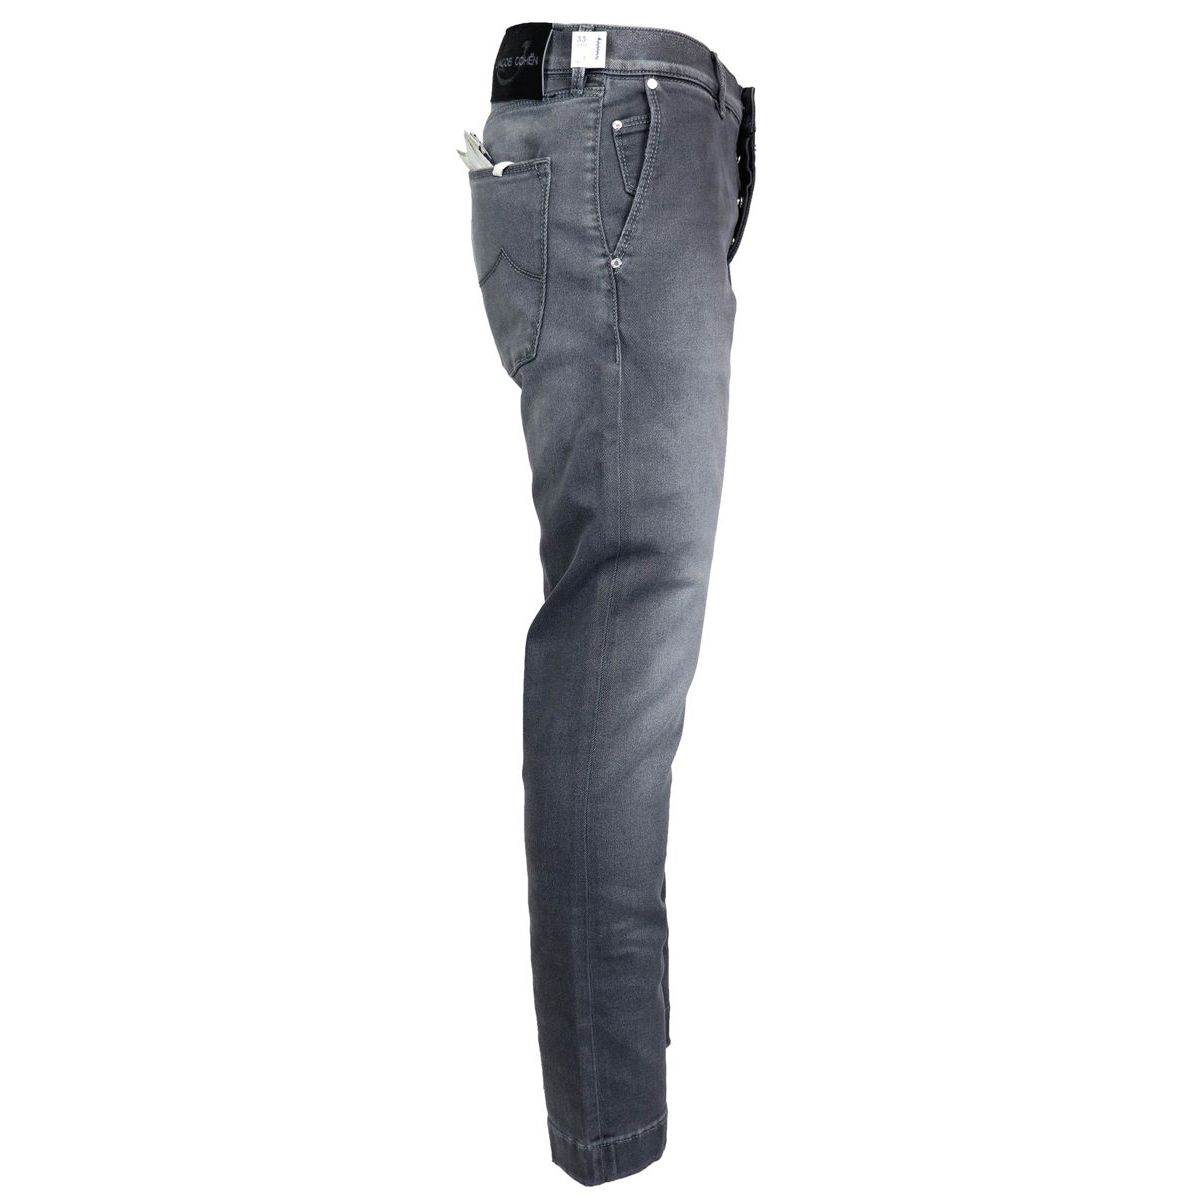 Elasticated jeans pocket J676 COMF 00733 Grey Jacob Cohen